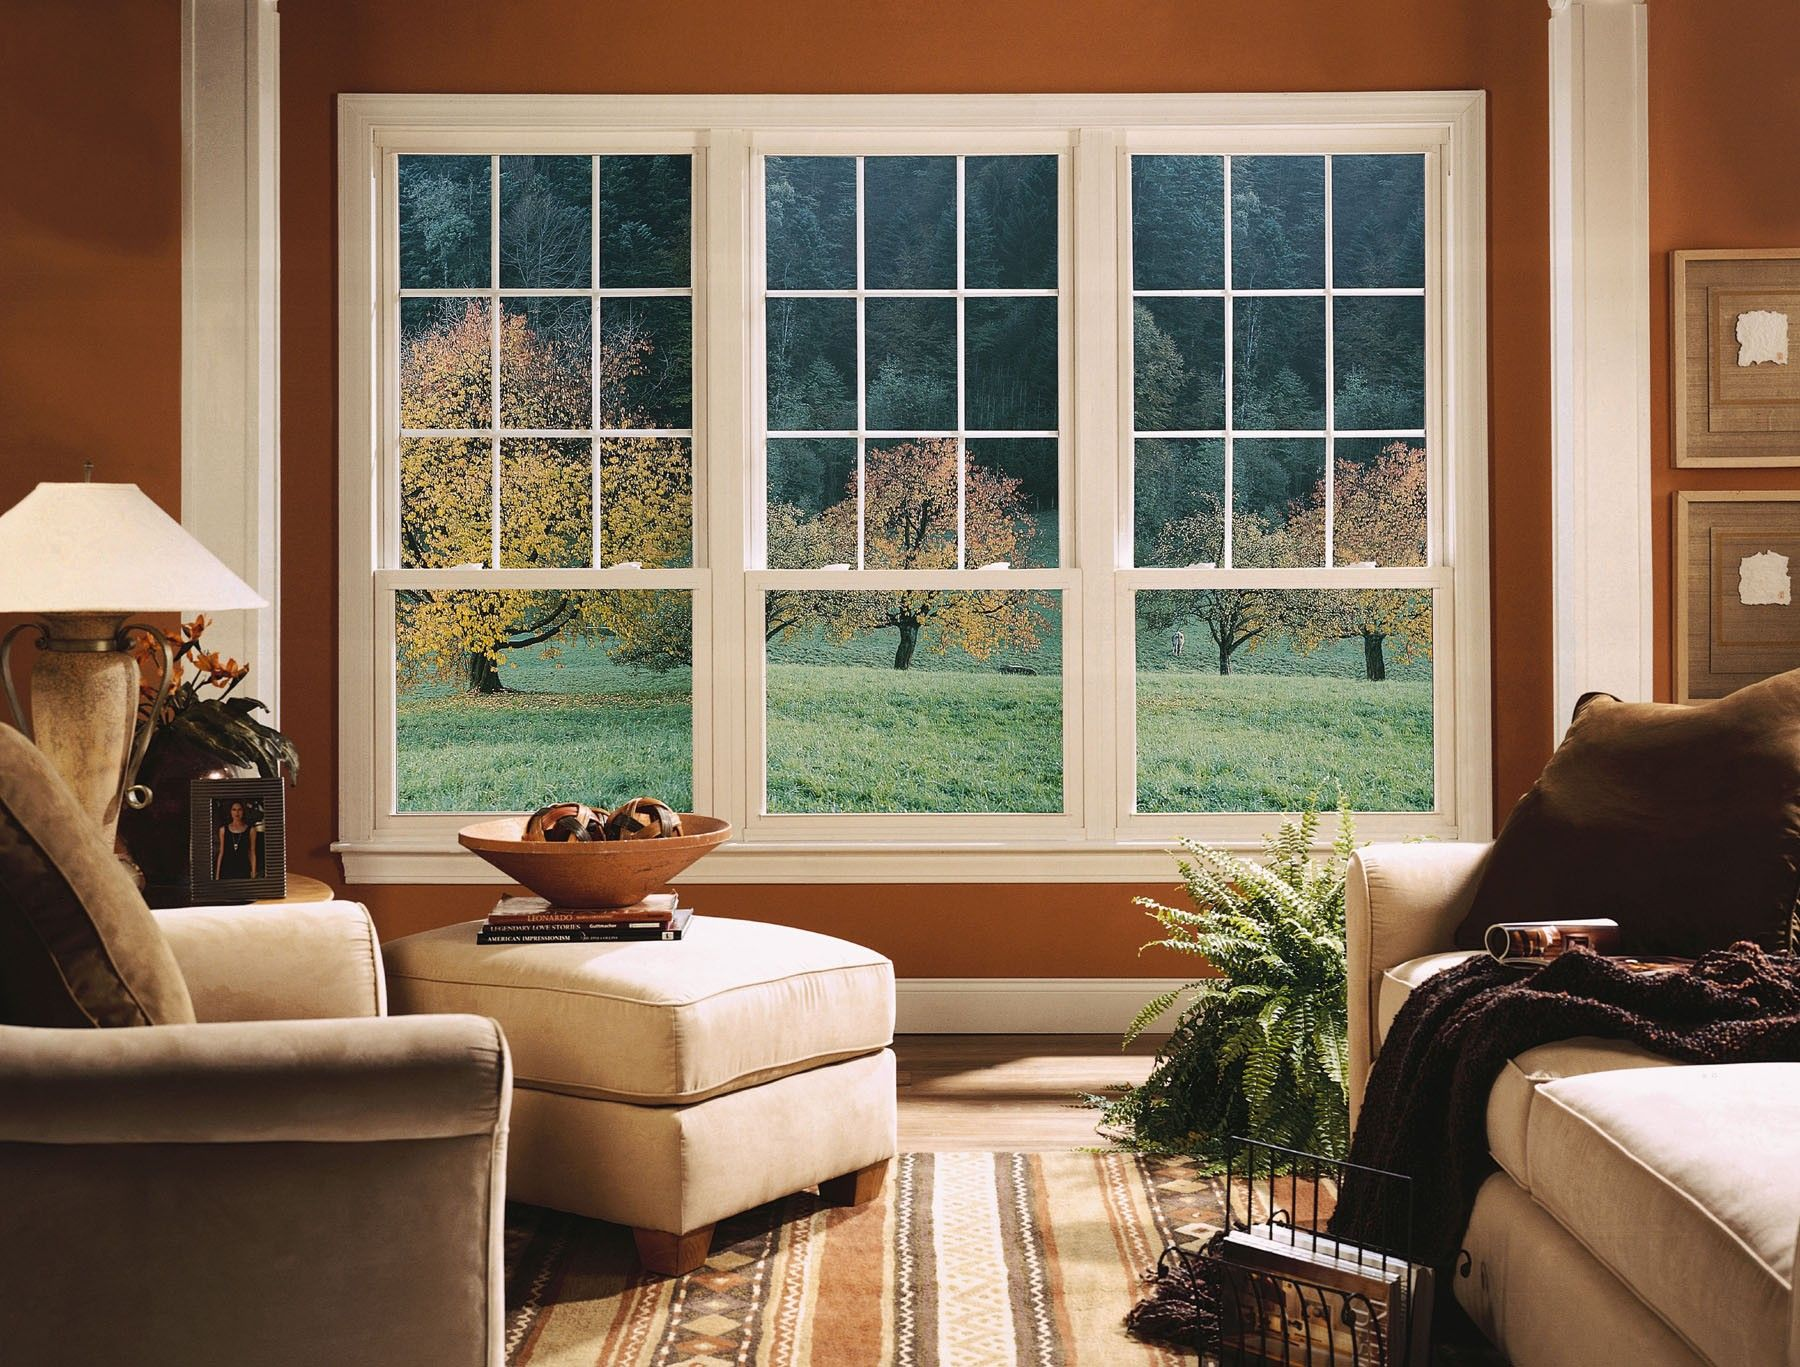 How Do I Choose The Right Windows? Window Energy Efficiency And